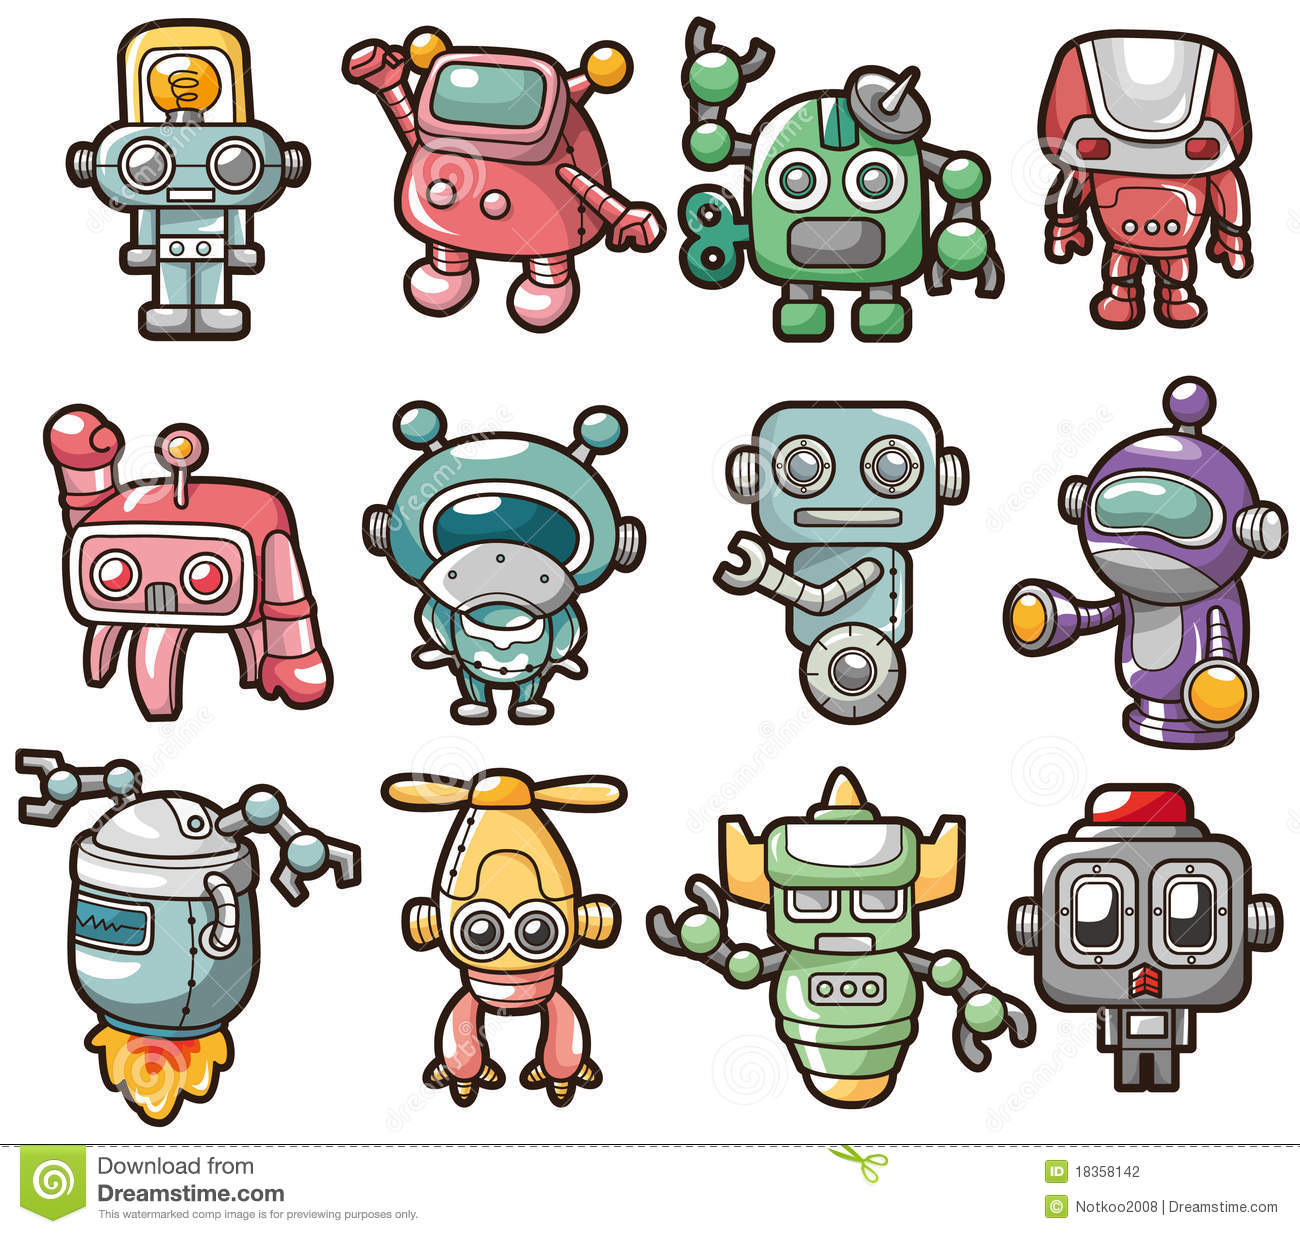 Cartoon Robot Icon Stock Vector. Illustration Of Character - 18358142